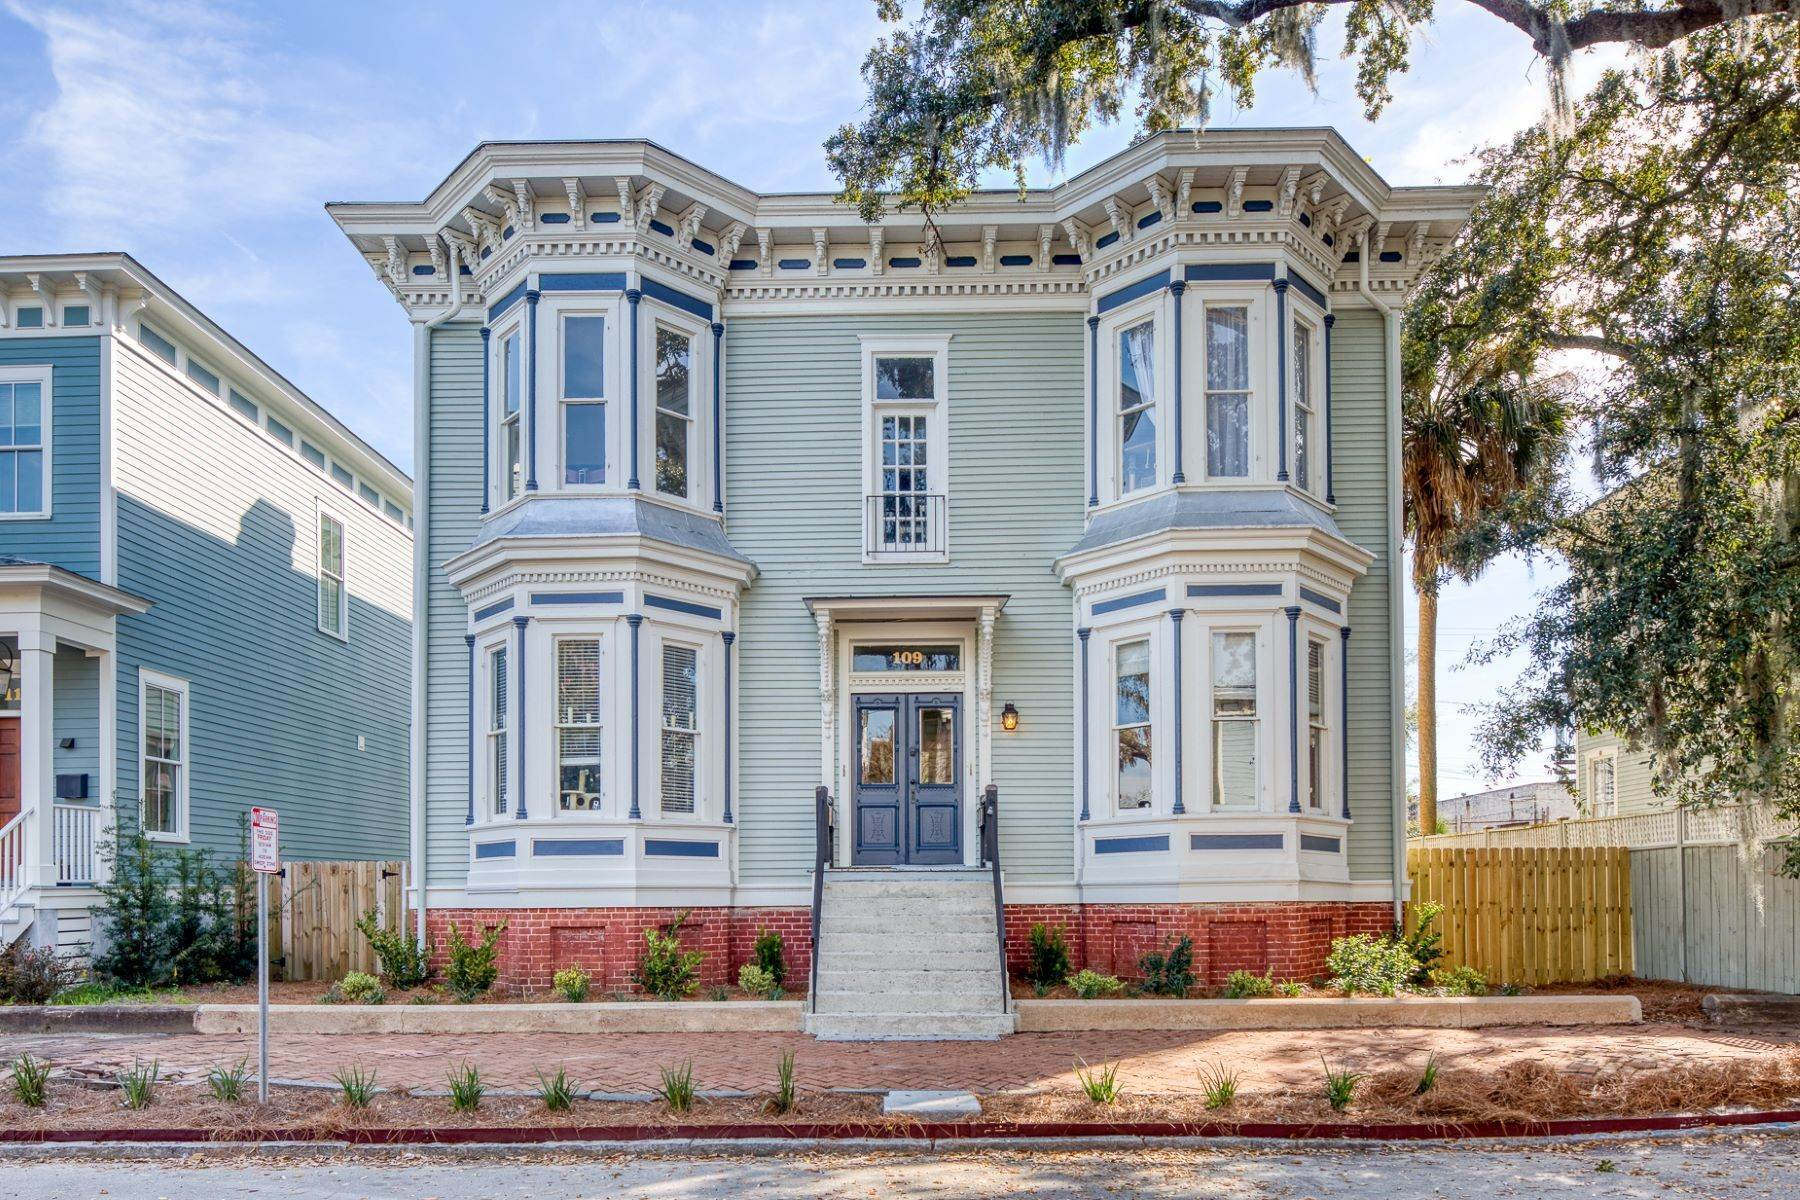 Property for Sale at Stunning Six Unit Victorian Apartment Building Near Forsyth Park 109 E Duffy Street Savannah, Georgia 31401 United States